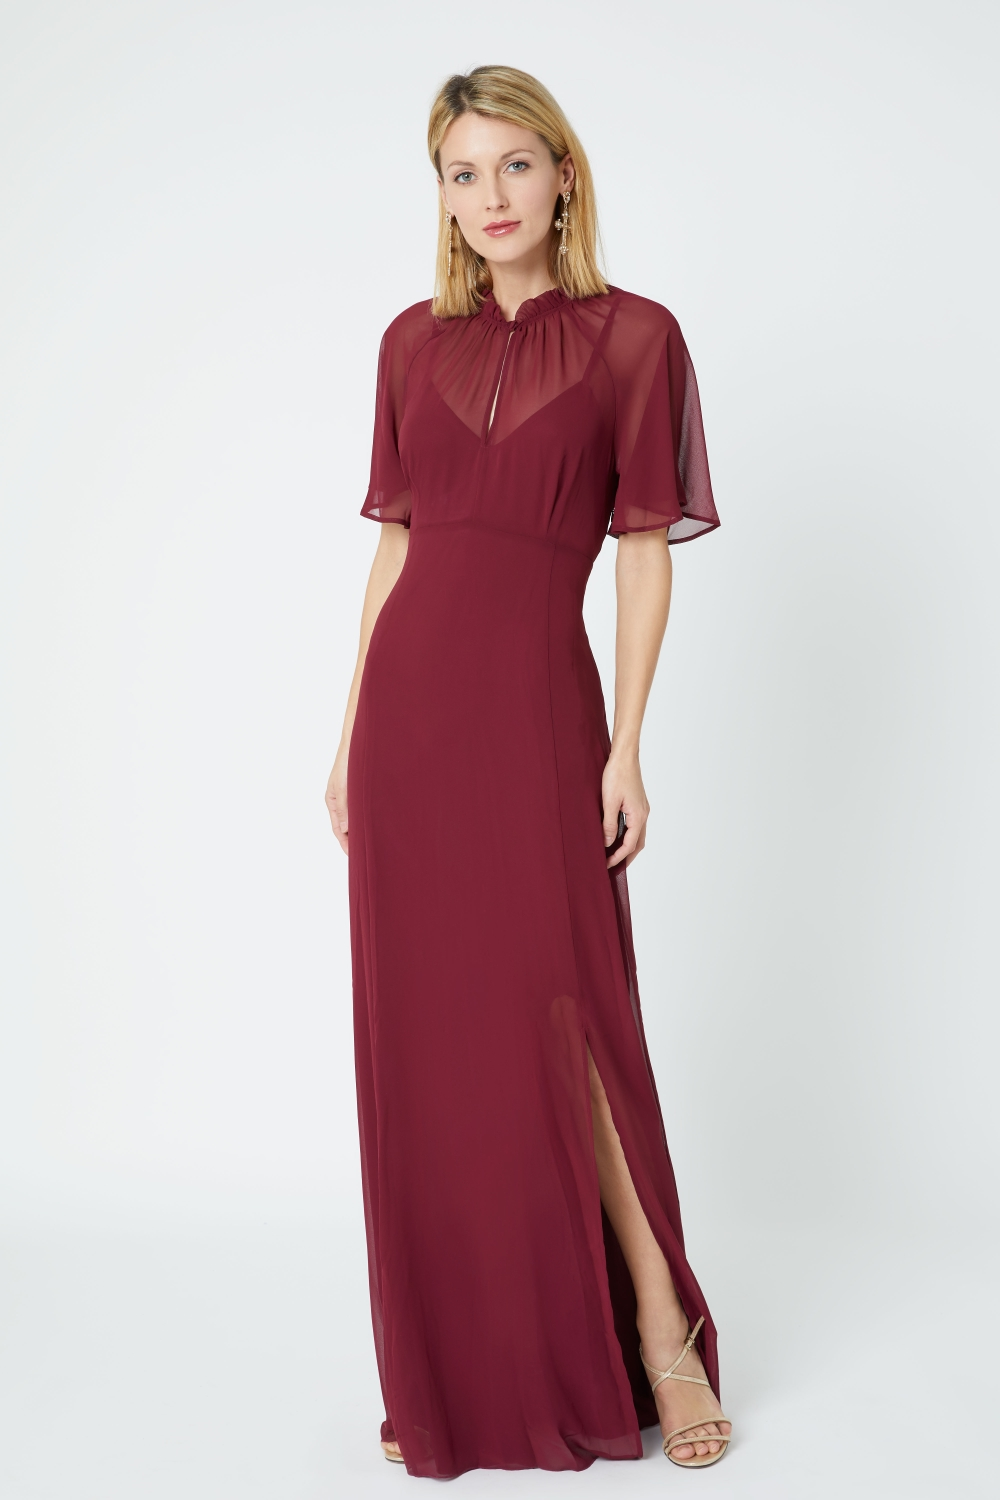 burgundy-bridesmaid-dress-with-sleeves